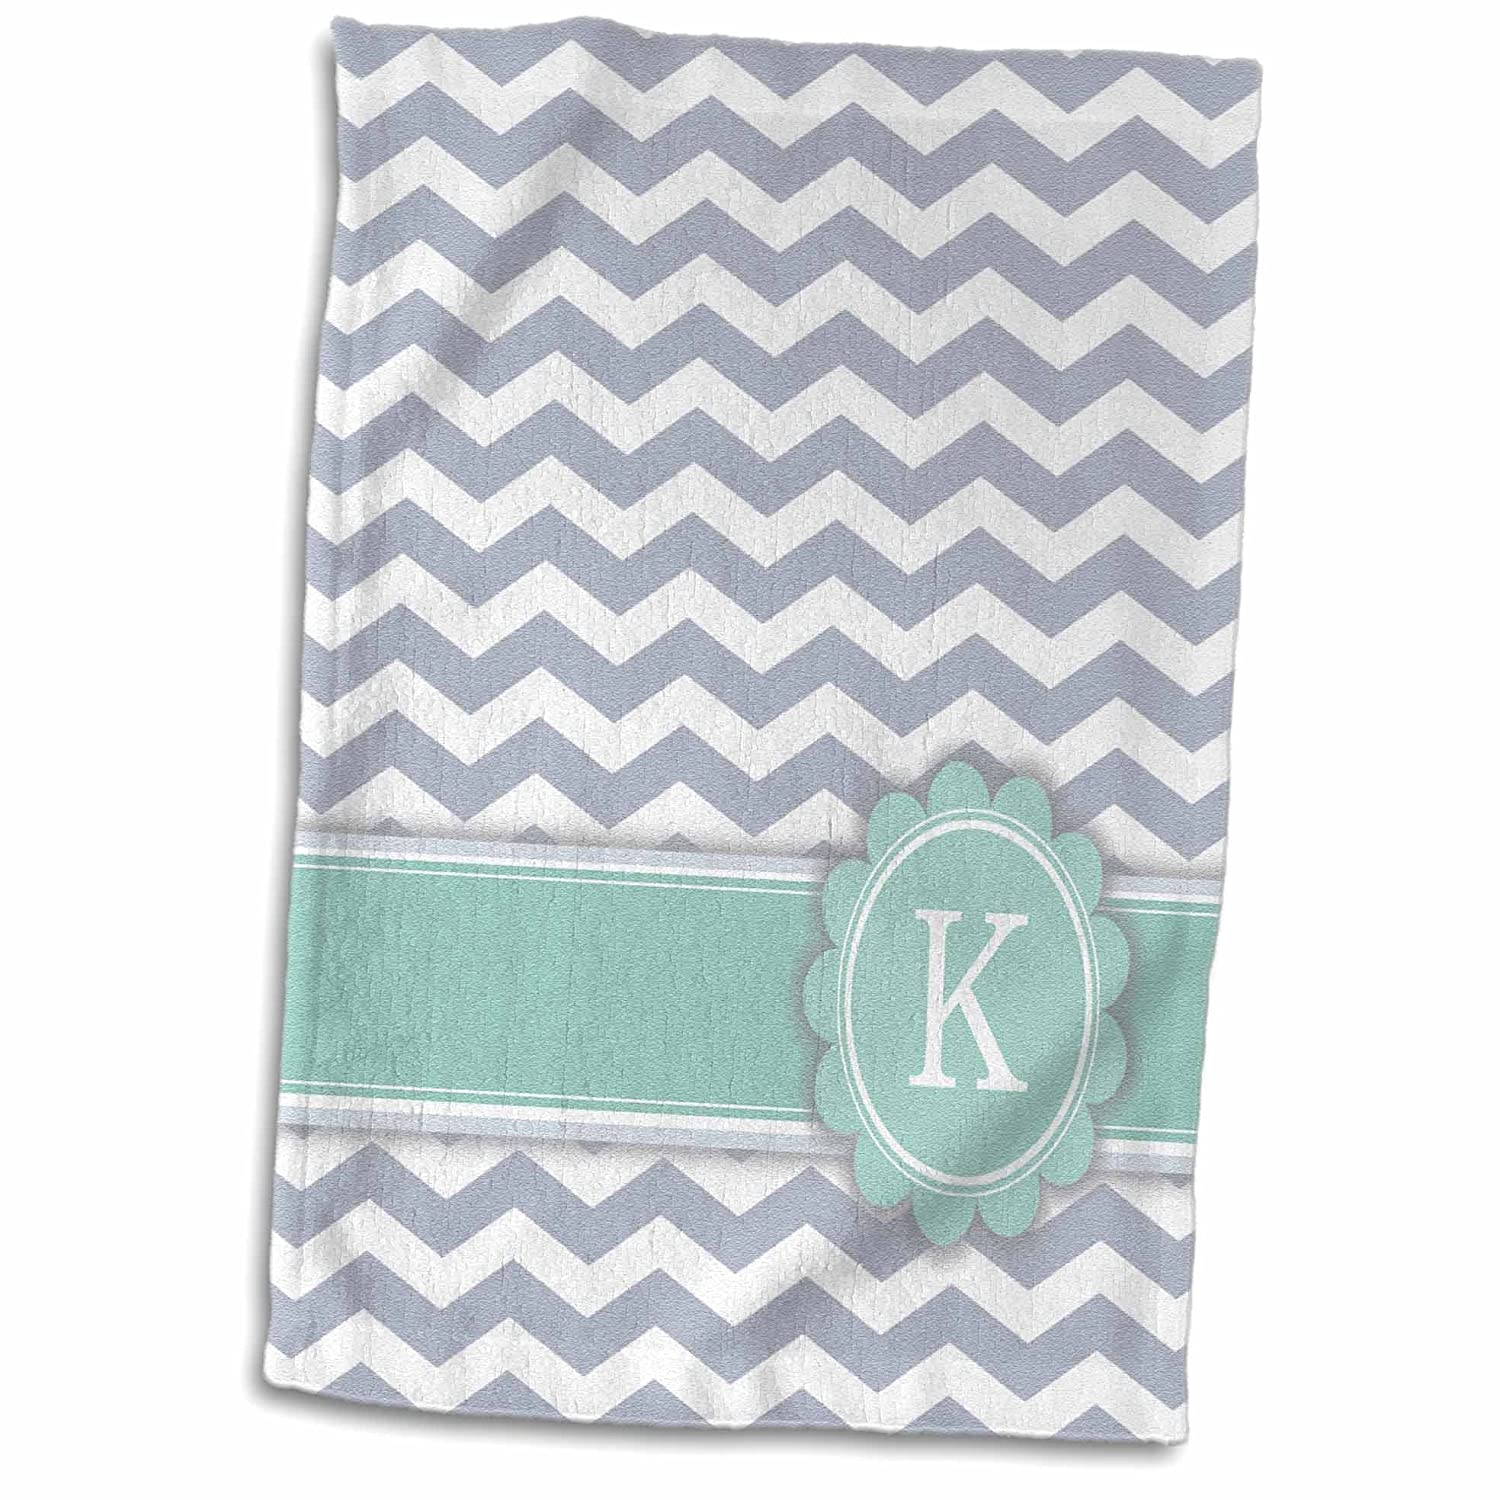 Gray Zigzags Personal Initial Zig Zags Towel 15 x 22 Multicolor 3dRose twl/_154230/_1 3D Rose Letter K Monogrammed On Grey and White Chevron with Mint